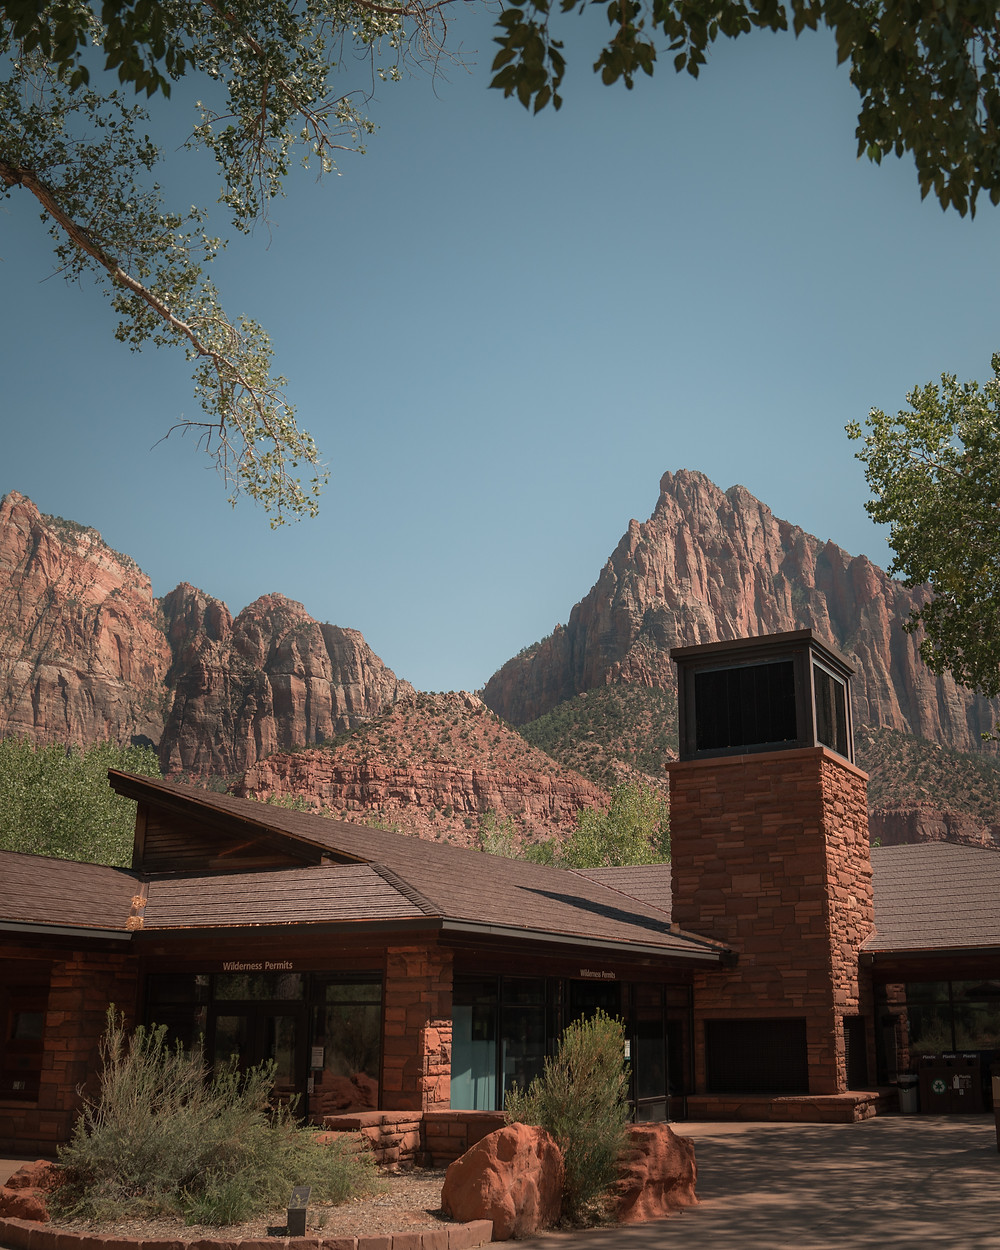 Visitor center at Zion national park